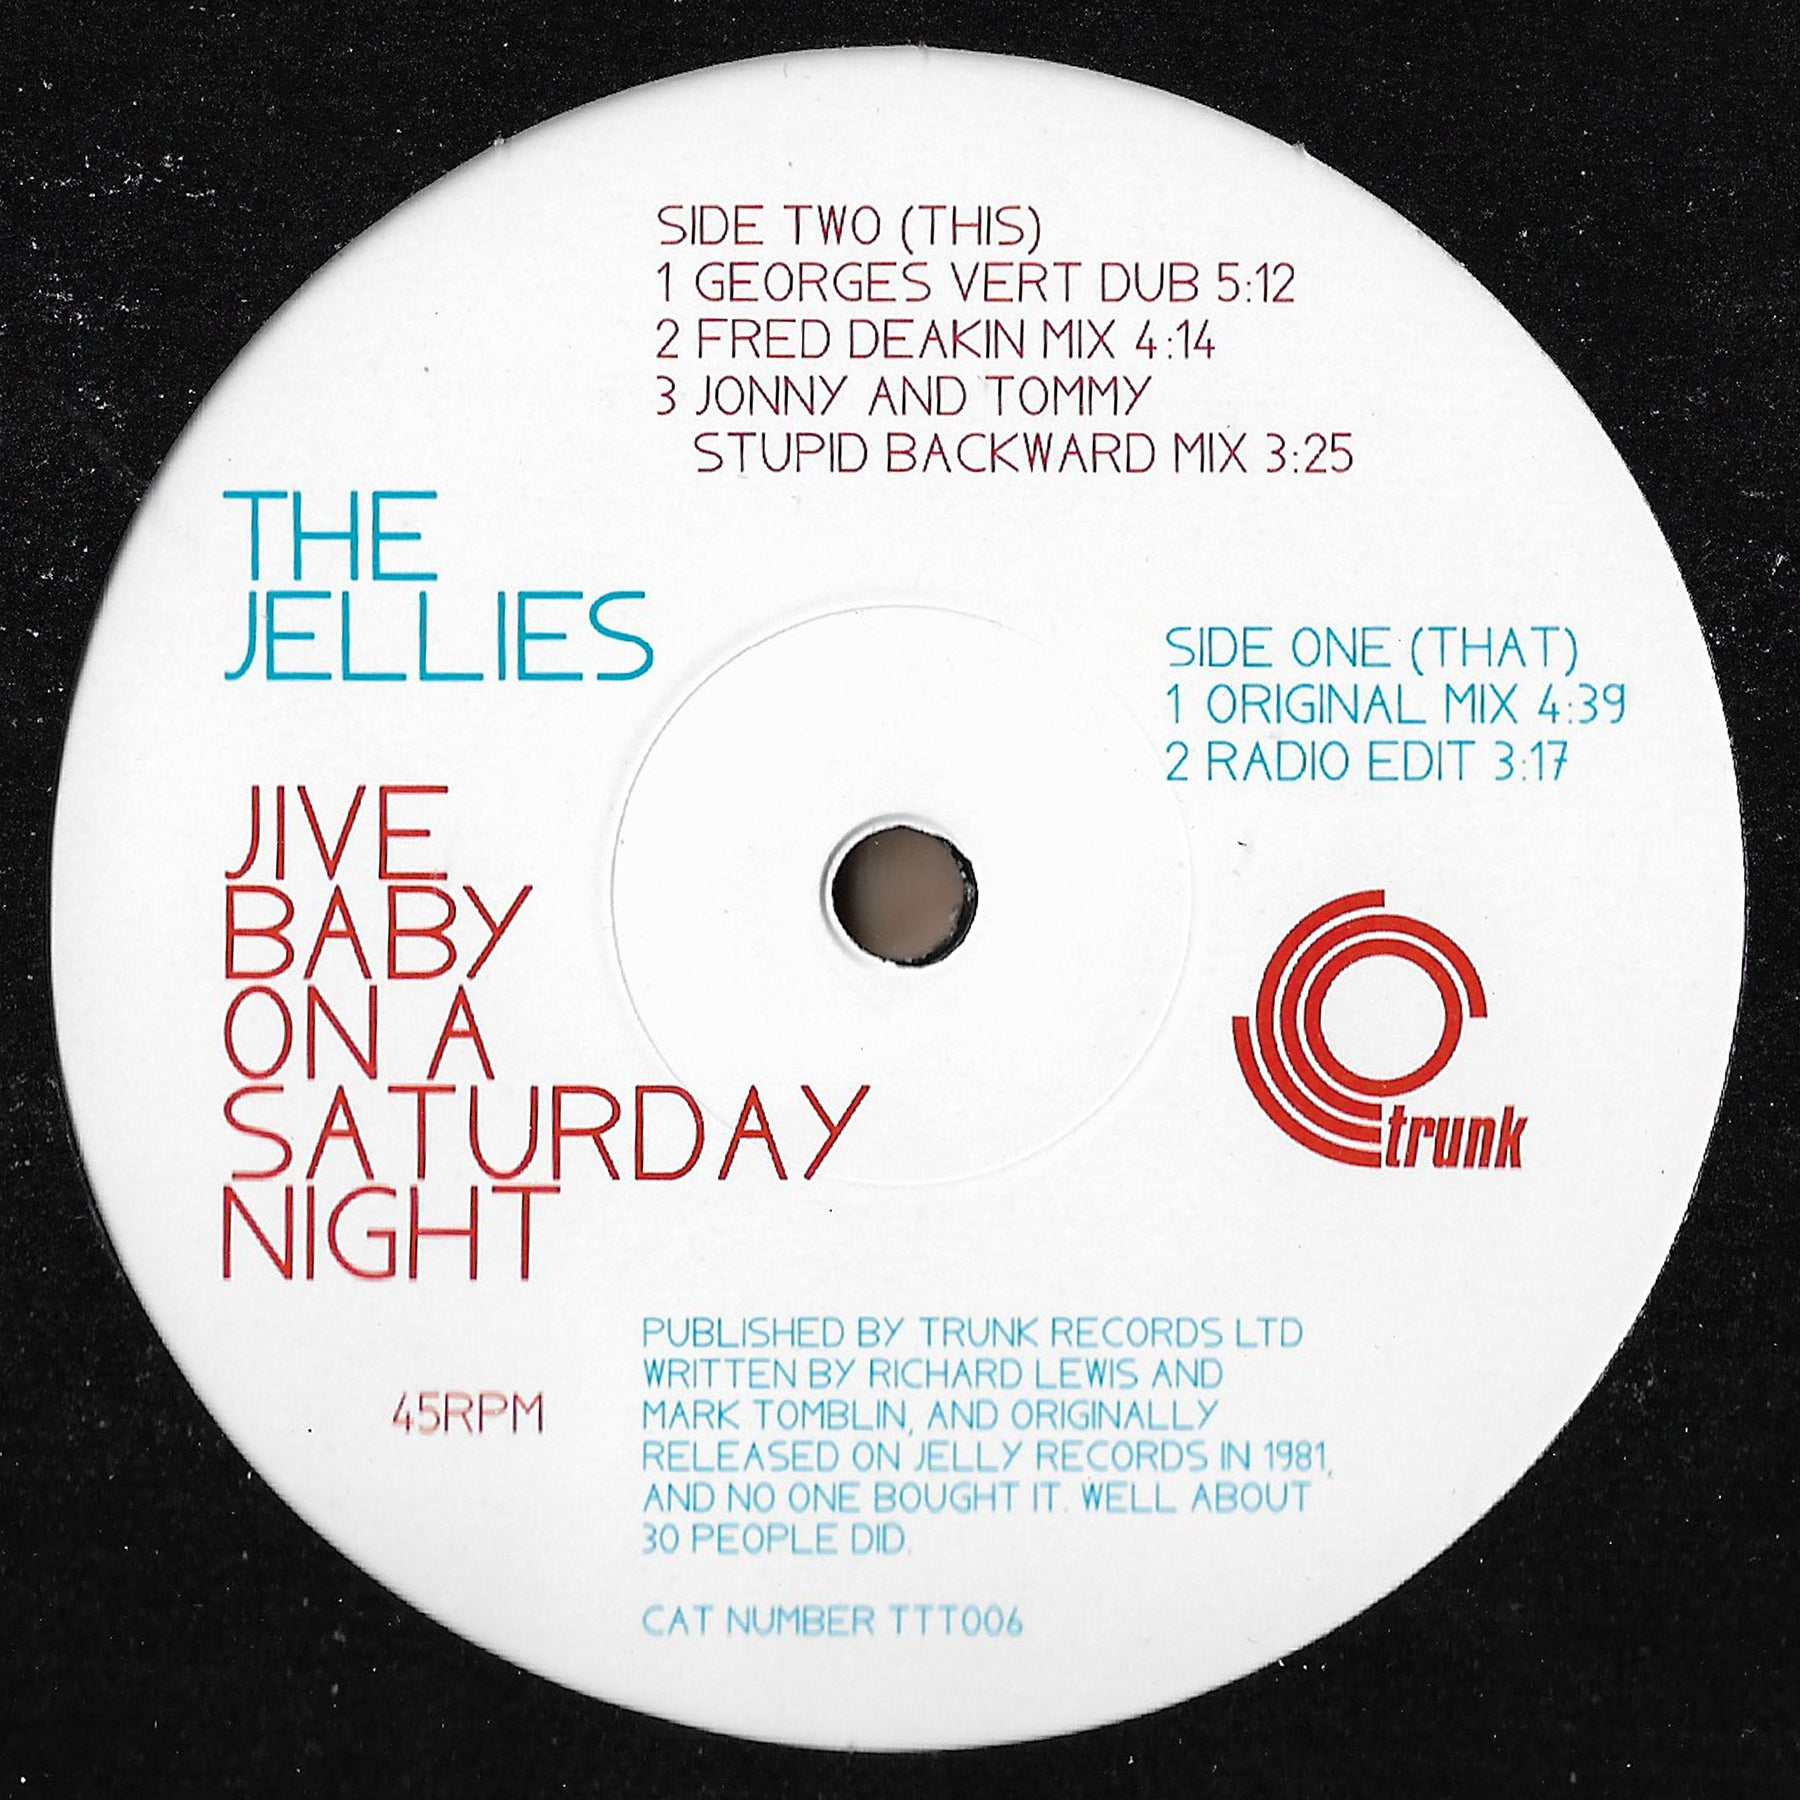 The Jellies - Jive Baby On A Saturday Night